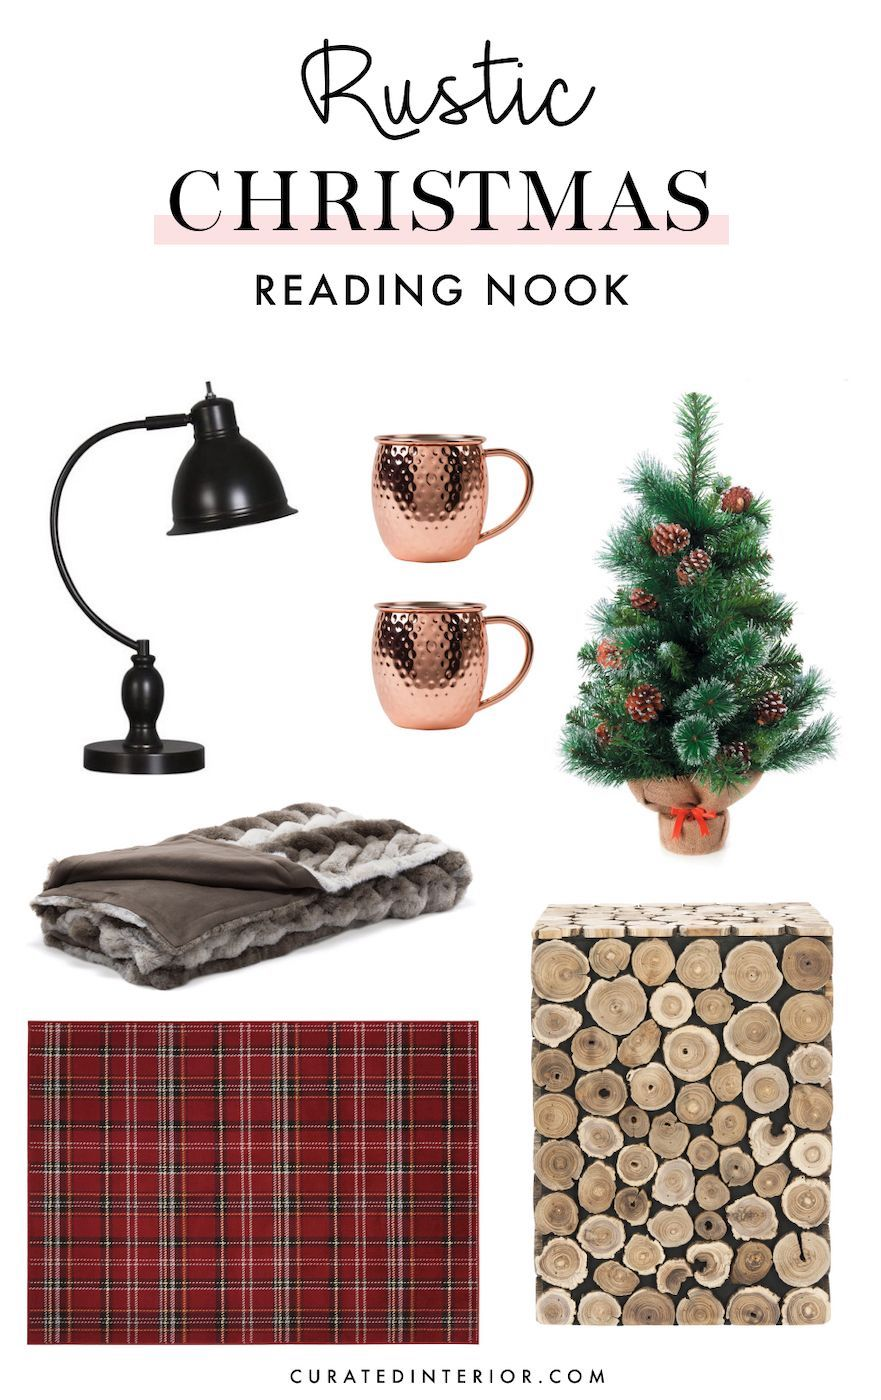 Rustic Christmas Reading Nook Decorations